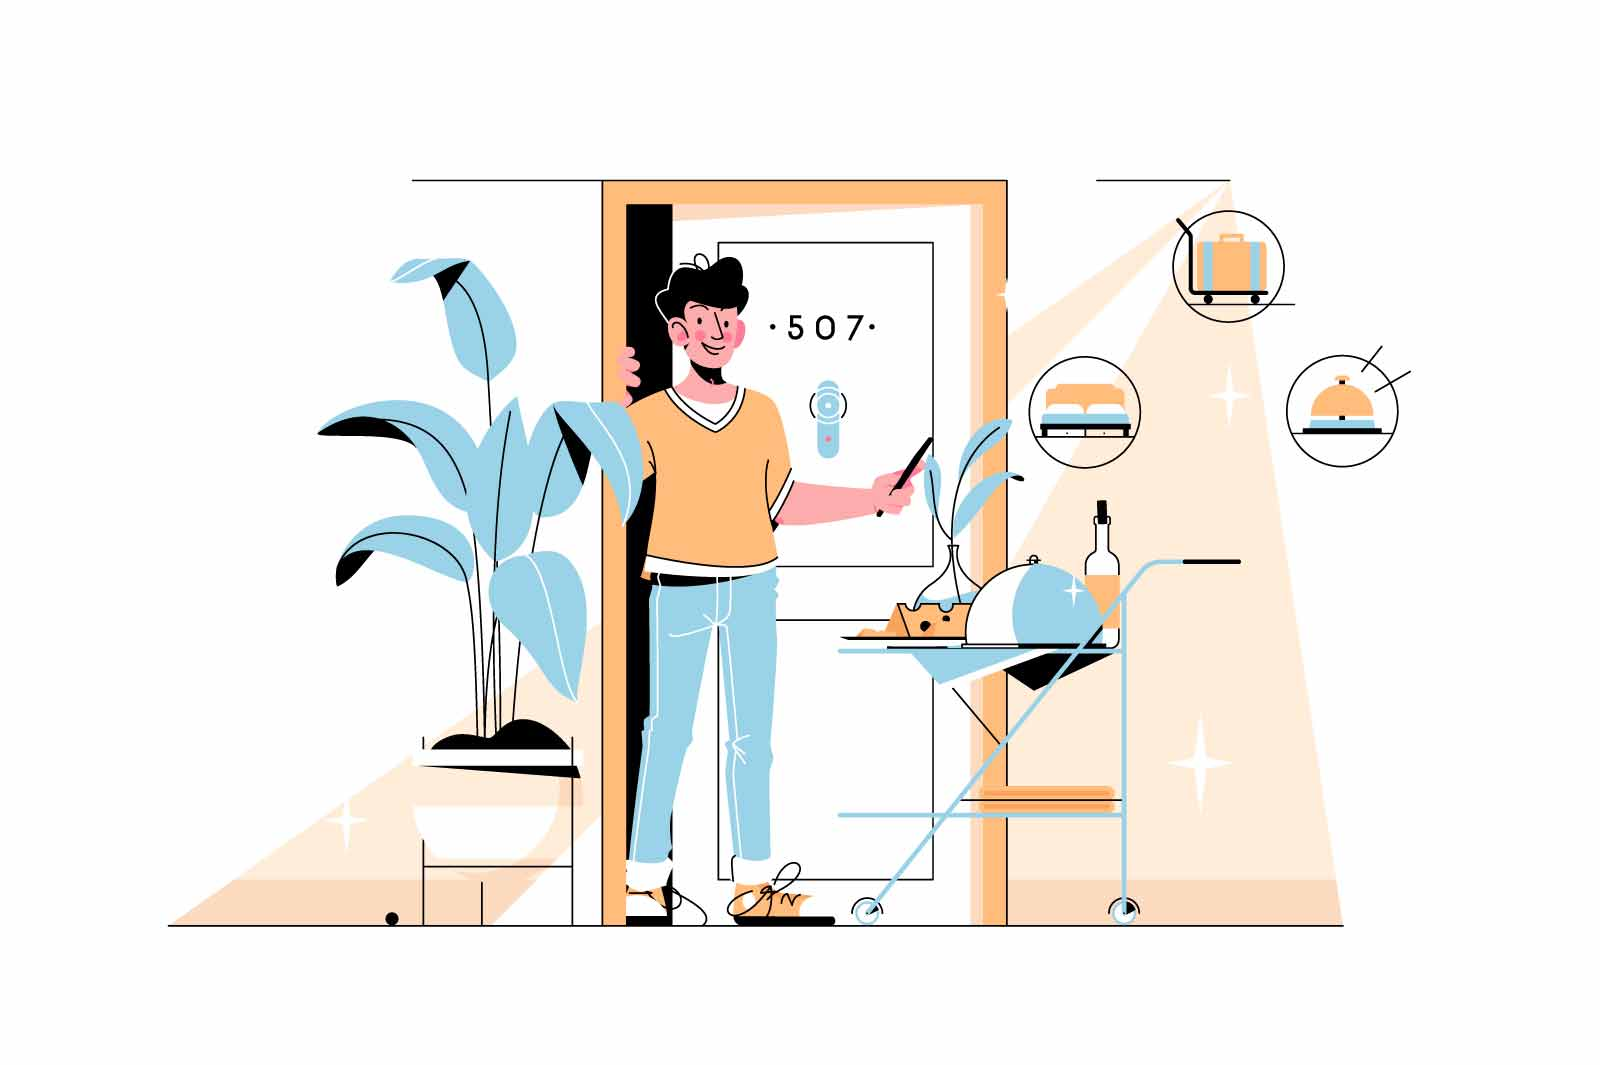 Man glad with hotel service vector illustration. Luxury resort with five starts flat style. Good service, all inclusive and good stay concept. Isolated on white background